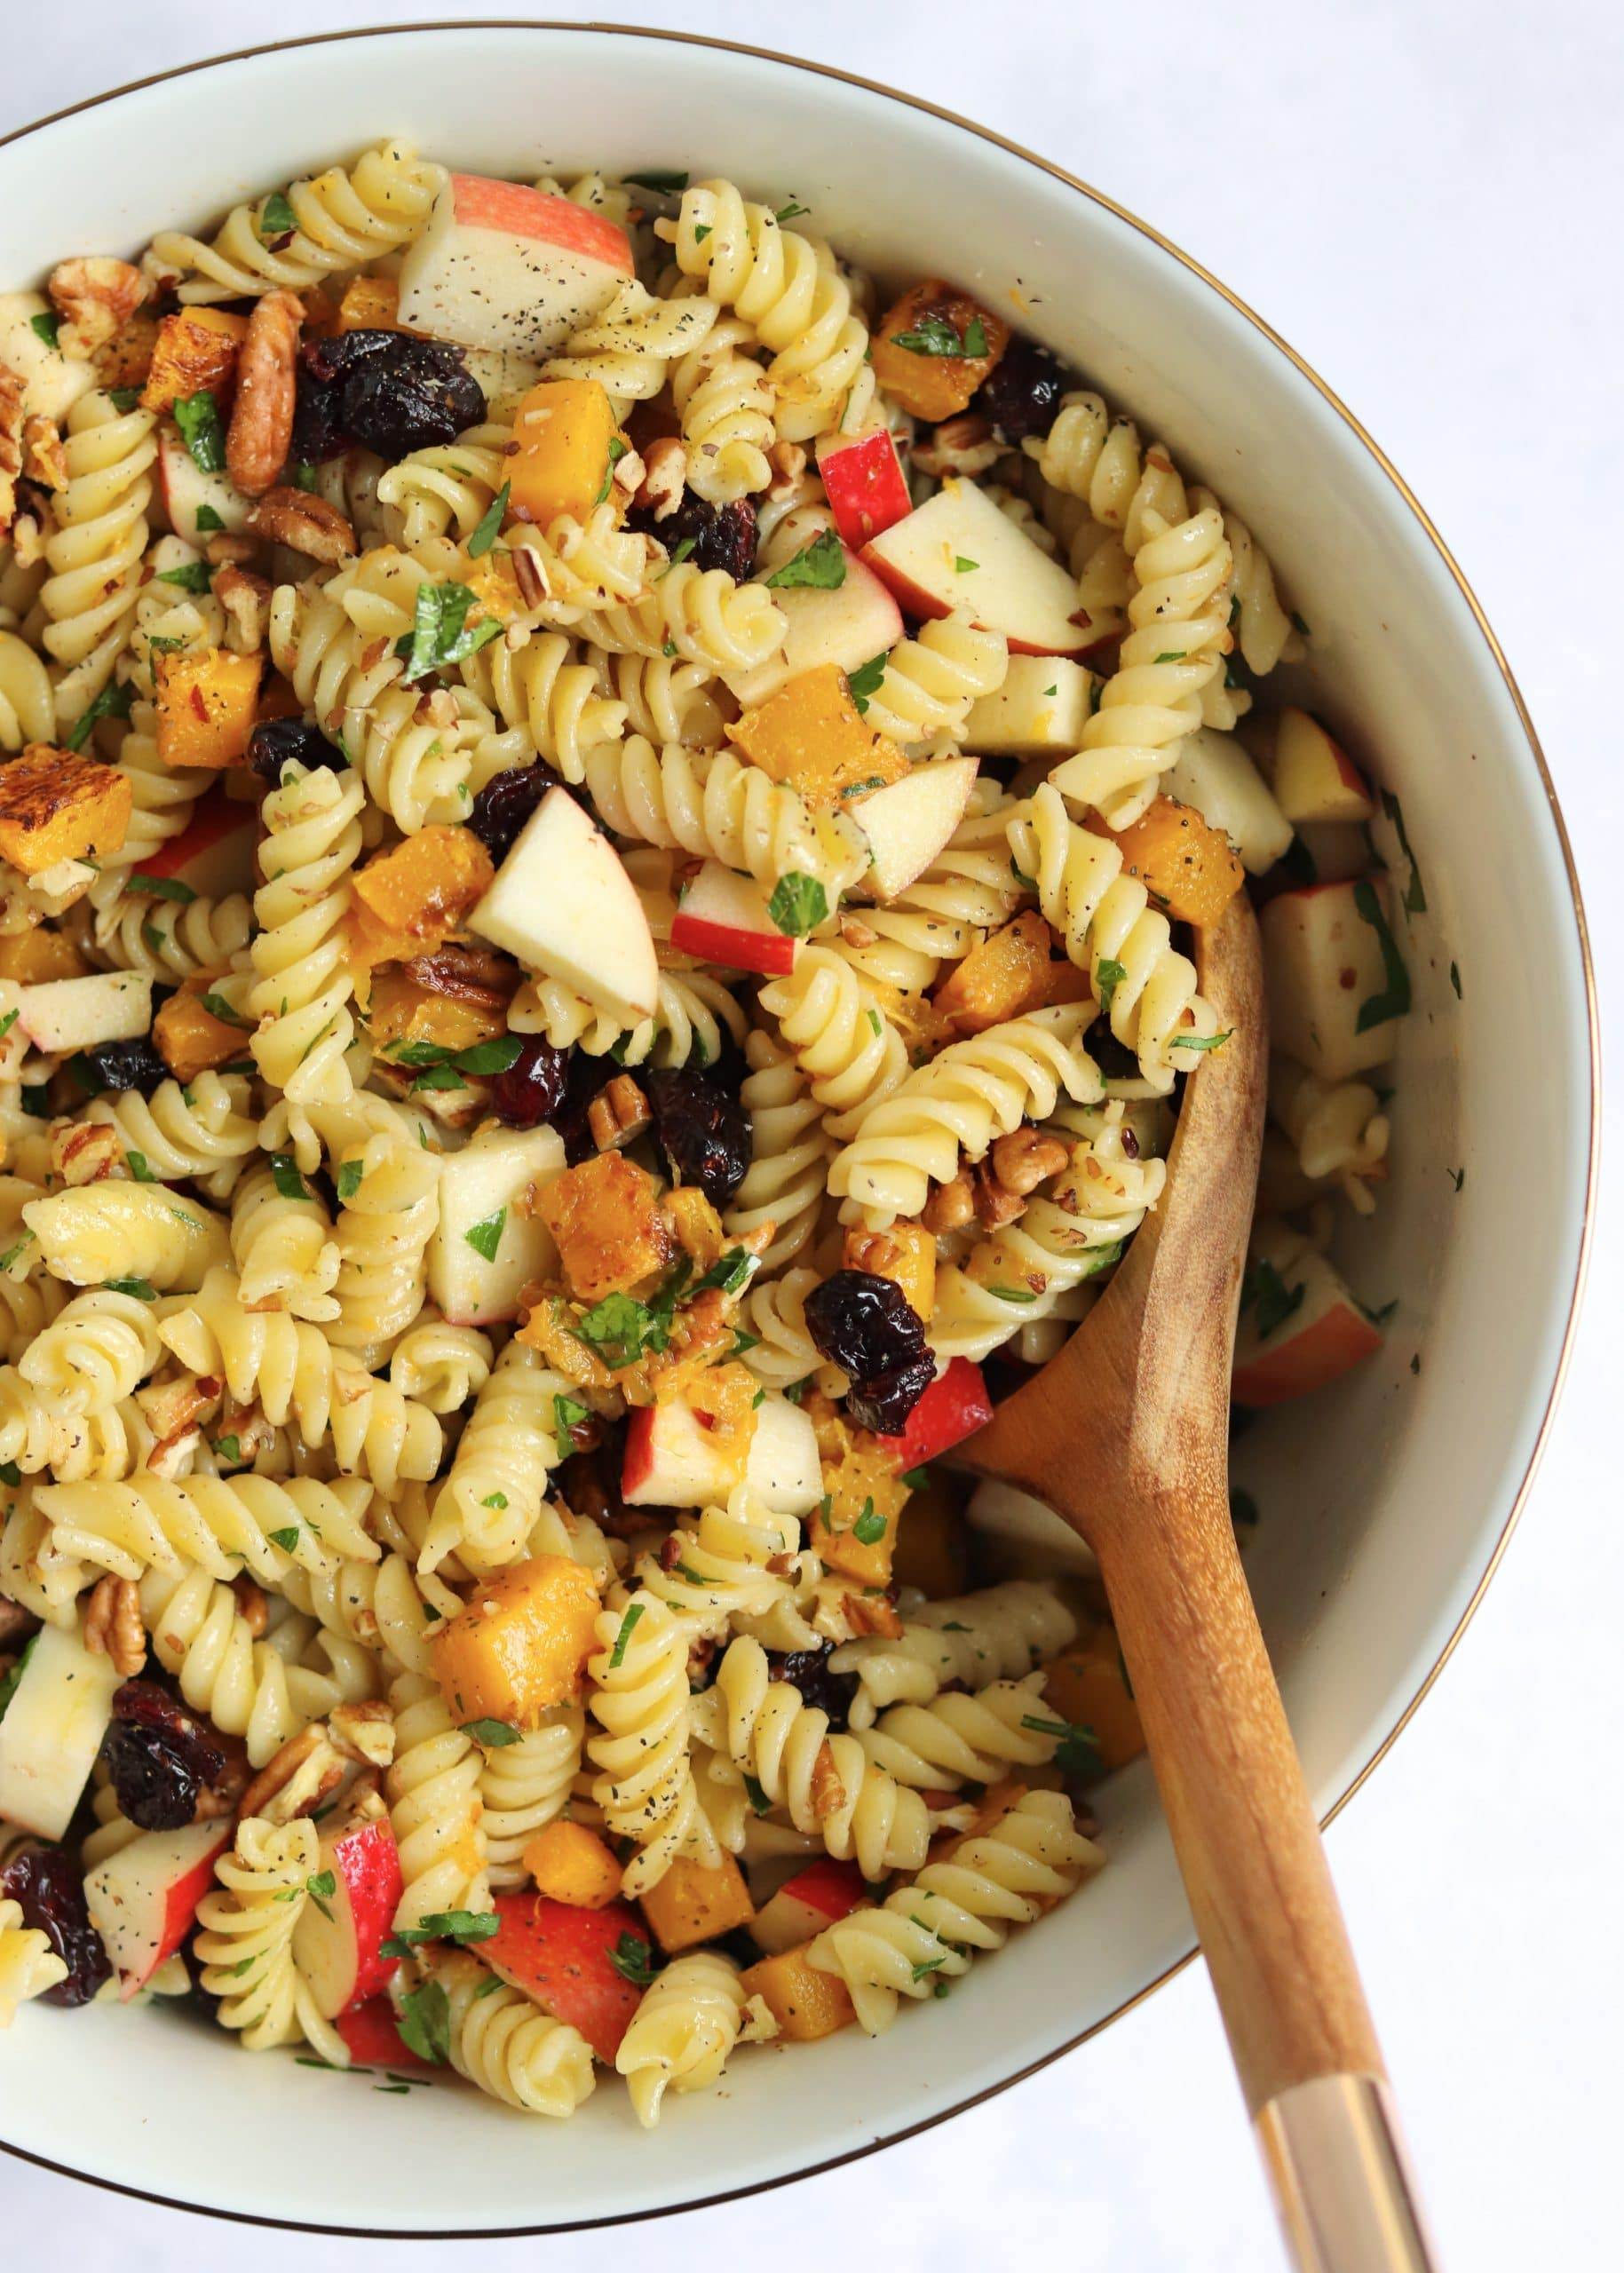 Wooden spoon in bowl of vegan pasta salad